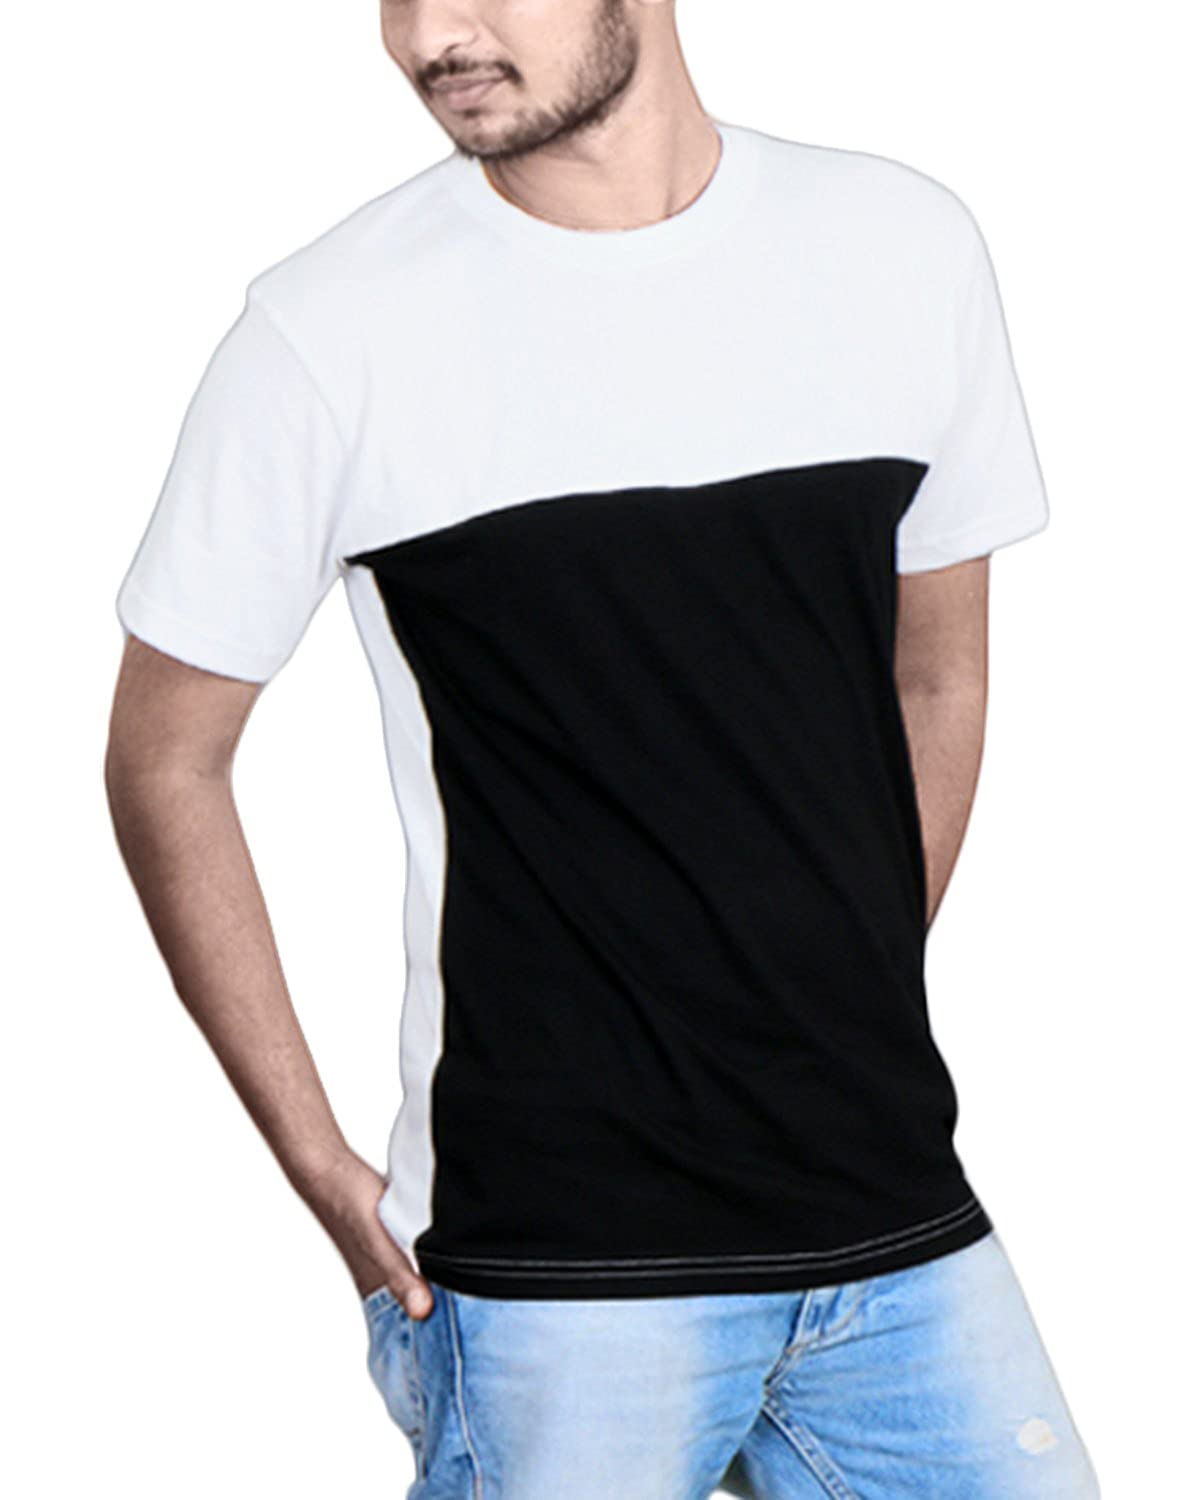 48ec1c5c9 FABIOUS Half Sleeve Round Neck Men's Cotton T-Shirt in Solid White & Black  Color: Amazon.in: Clothing & Accessories